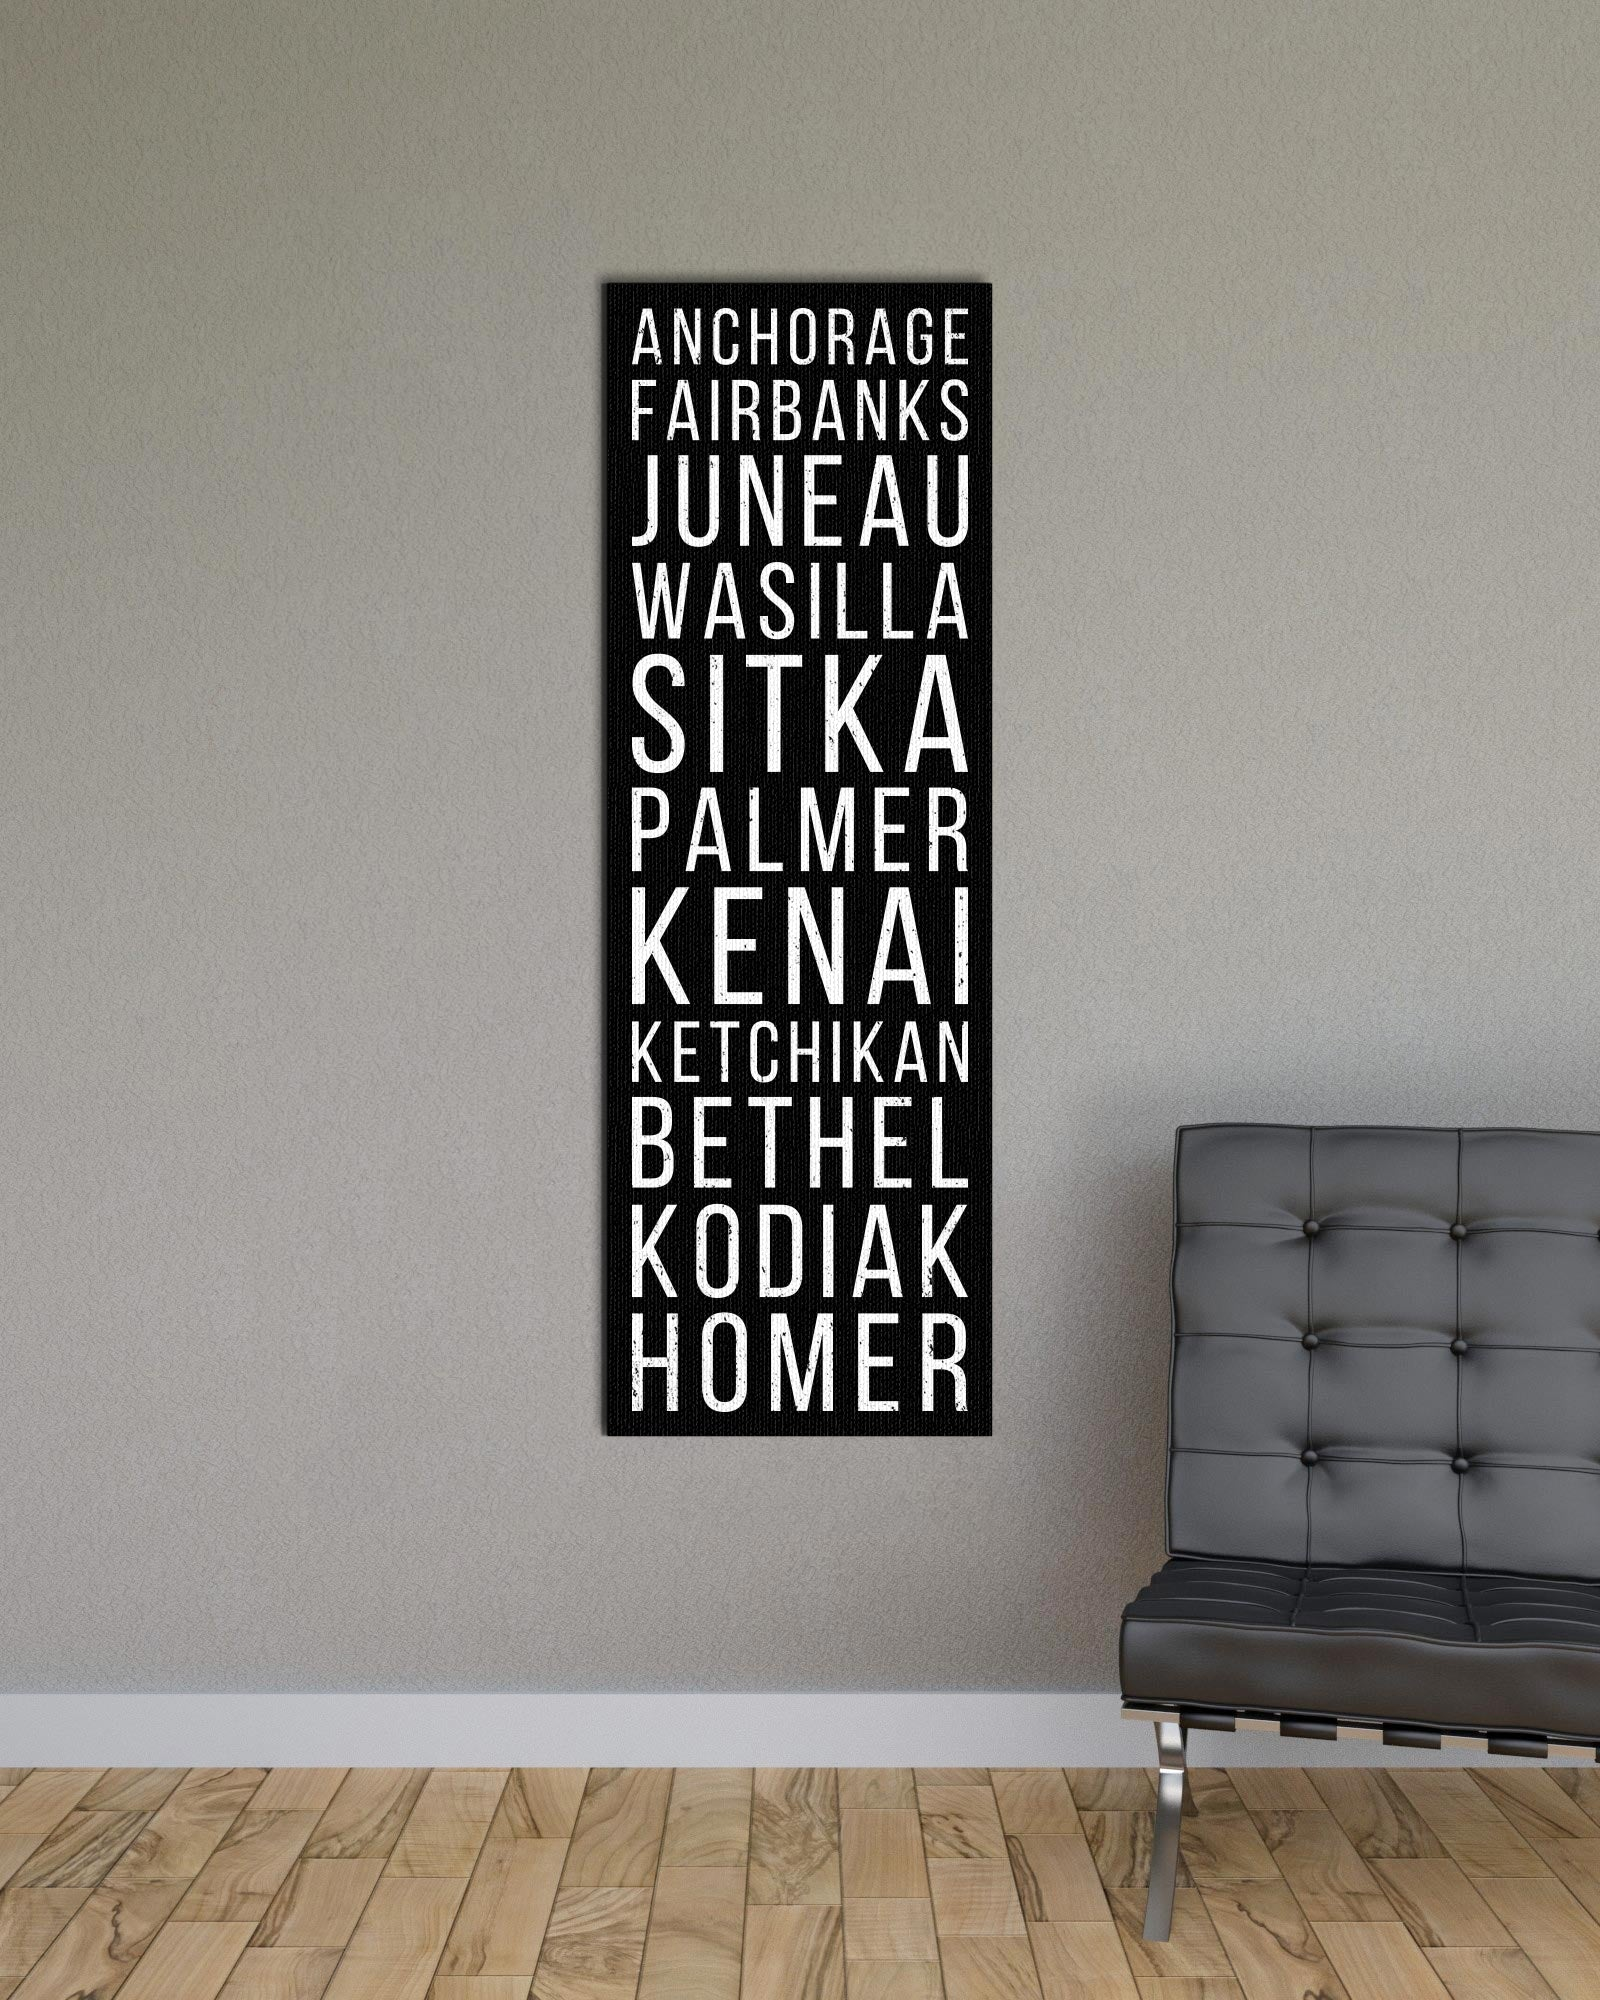 Alaska Anchorage Fairbanks Juneau Bus Scroll Subway Print